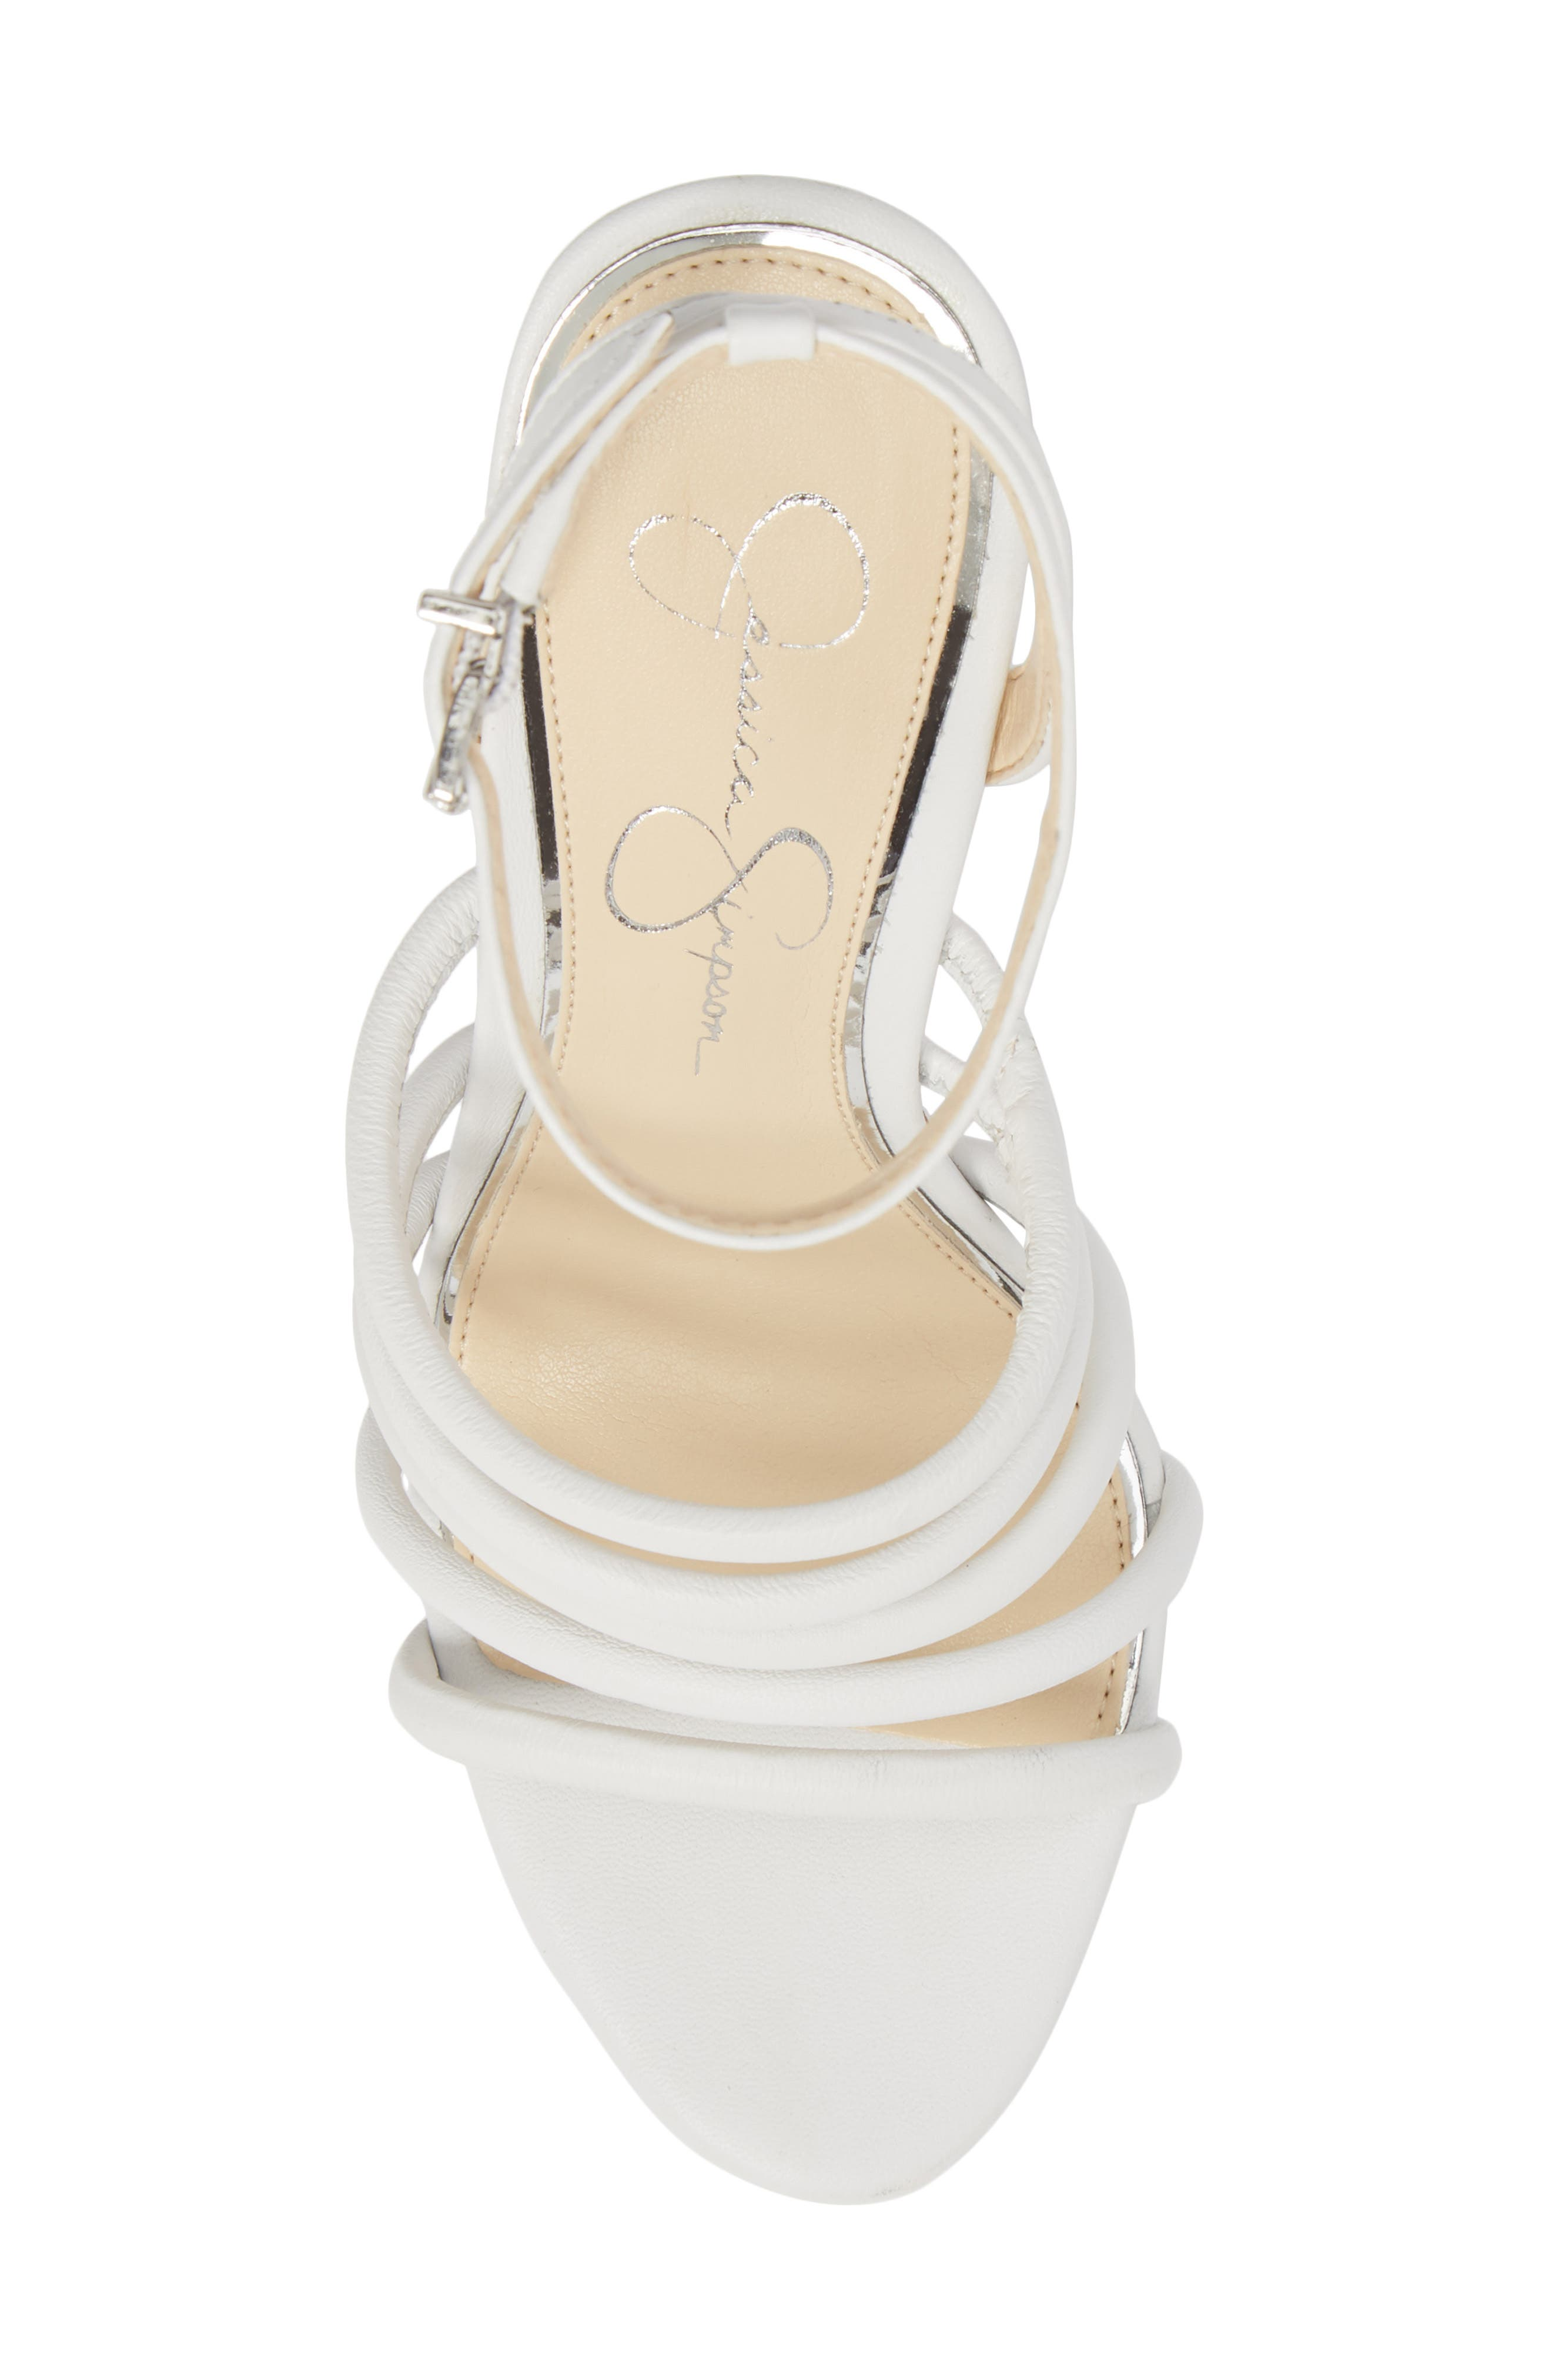 Joselle Strappy Sandal,                             Alternate thumbnail 14, color,